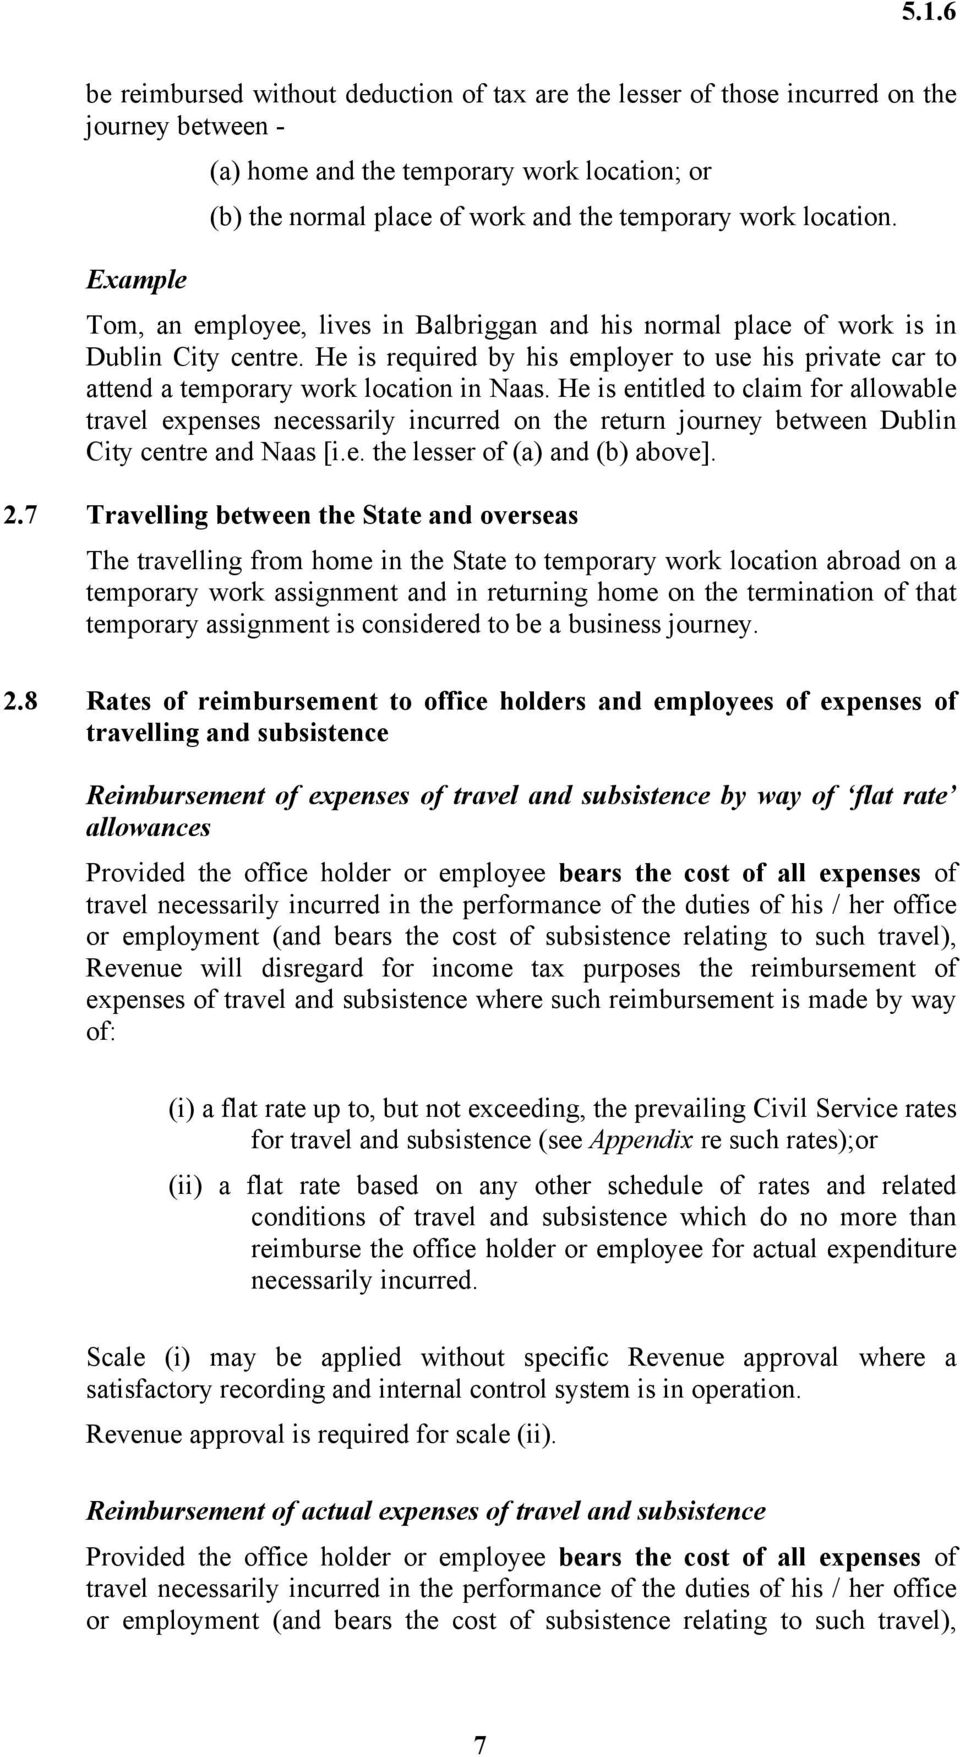 He is required by his employer to use his private car to attend a temporary work location in Naas.